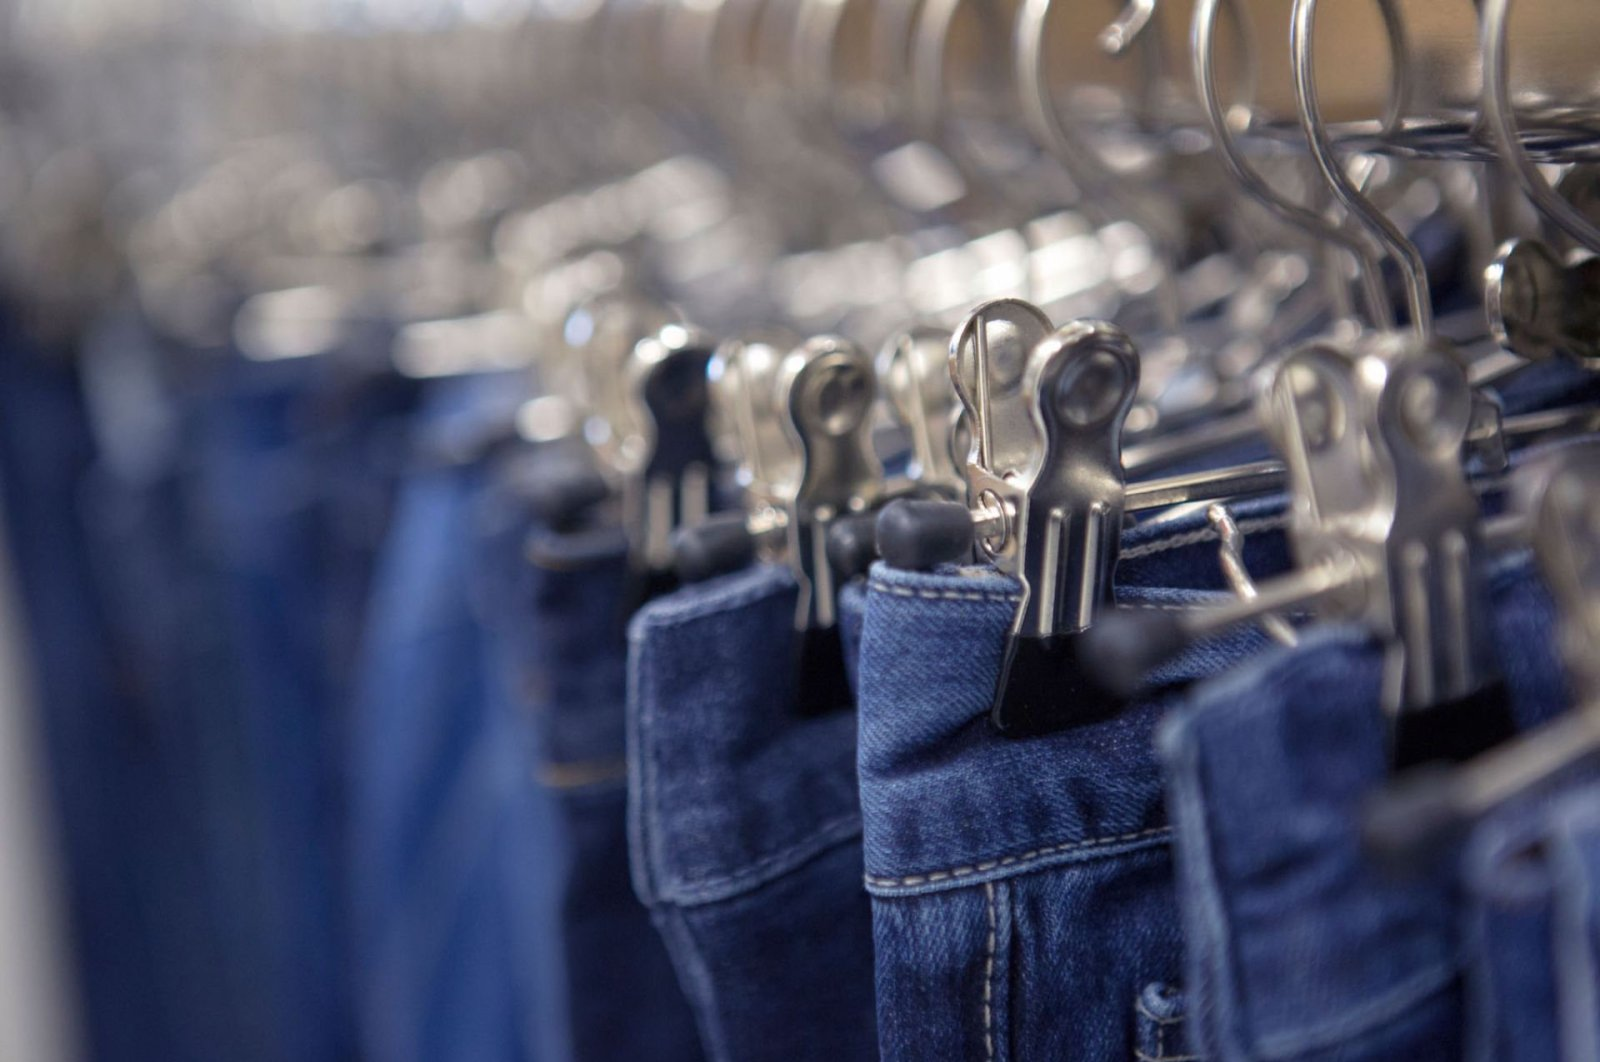 An undated photo shows a rack of blue jeans. (Sabah File Photo)